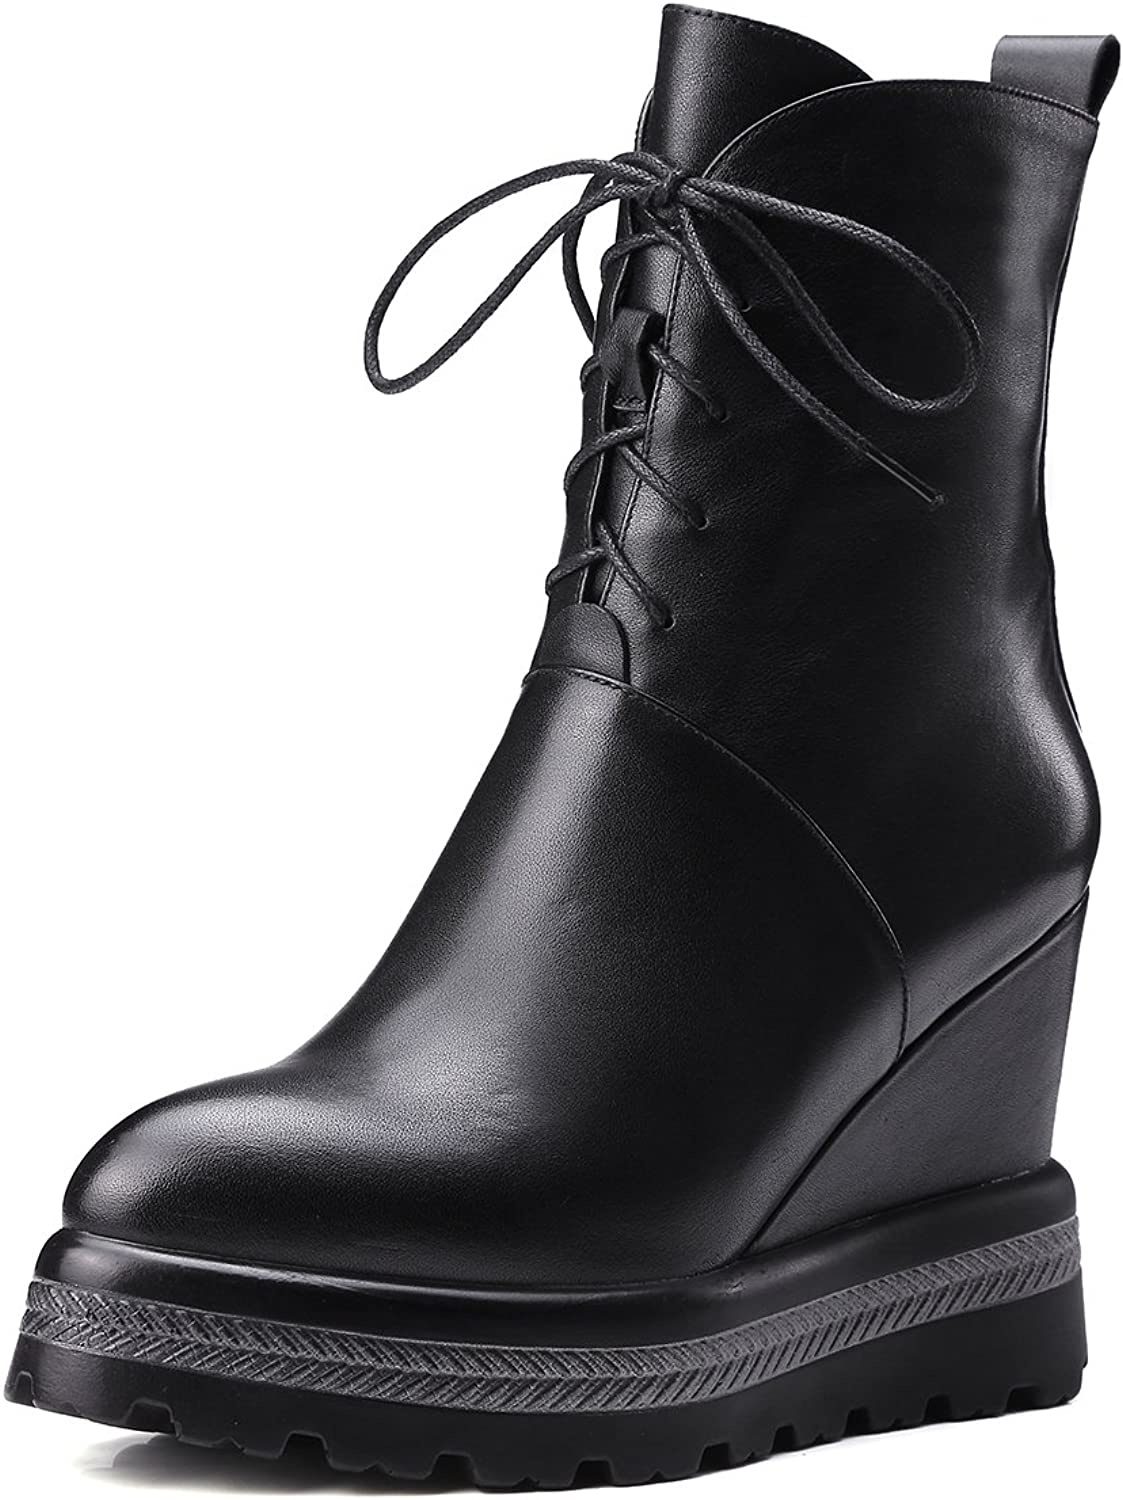 JIEEME Ladies Sexy Zipper Wedges Genuine Leather Ankle Women Boots